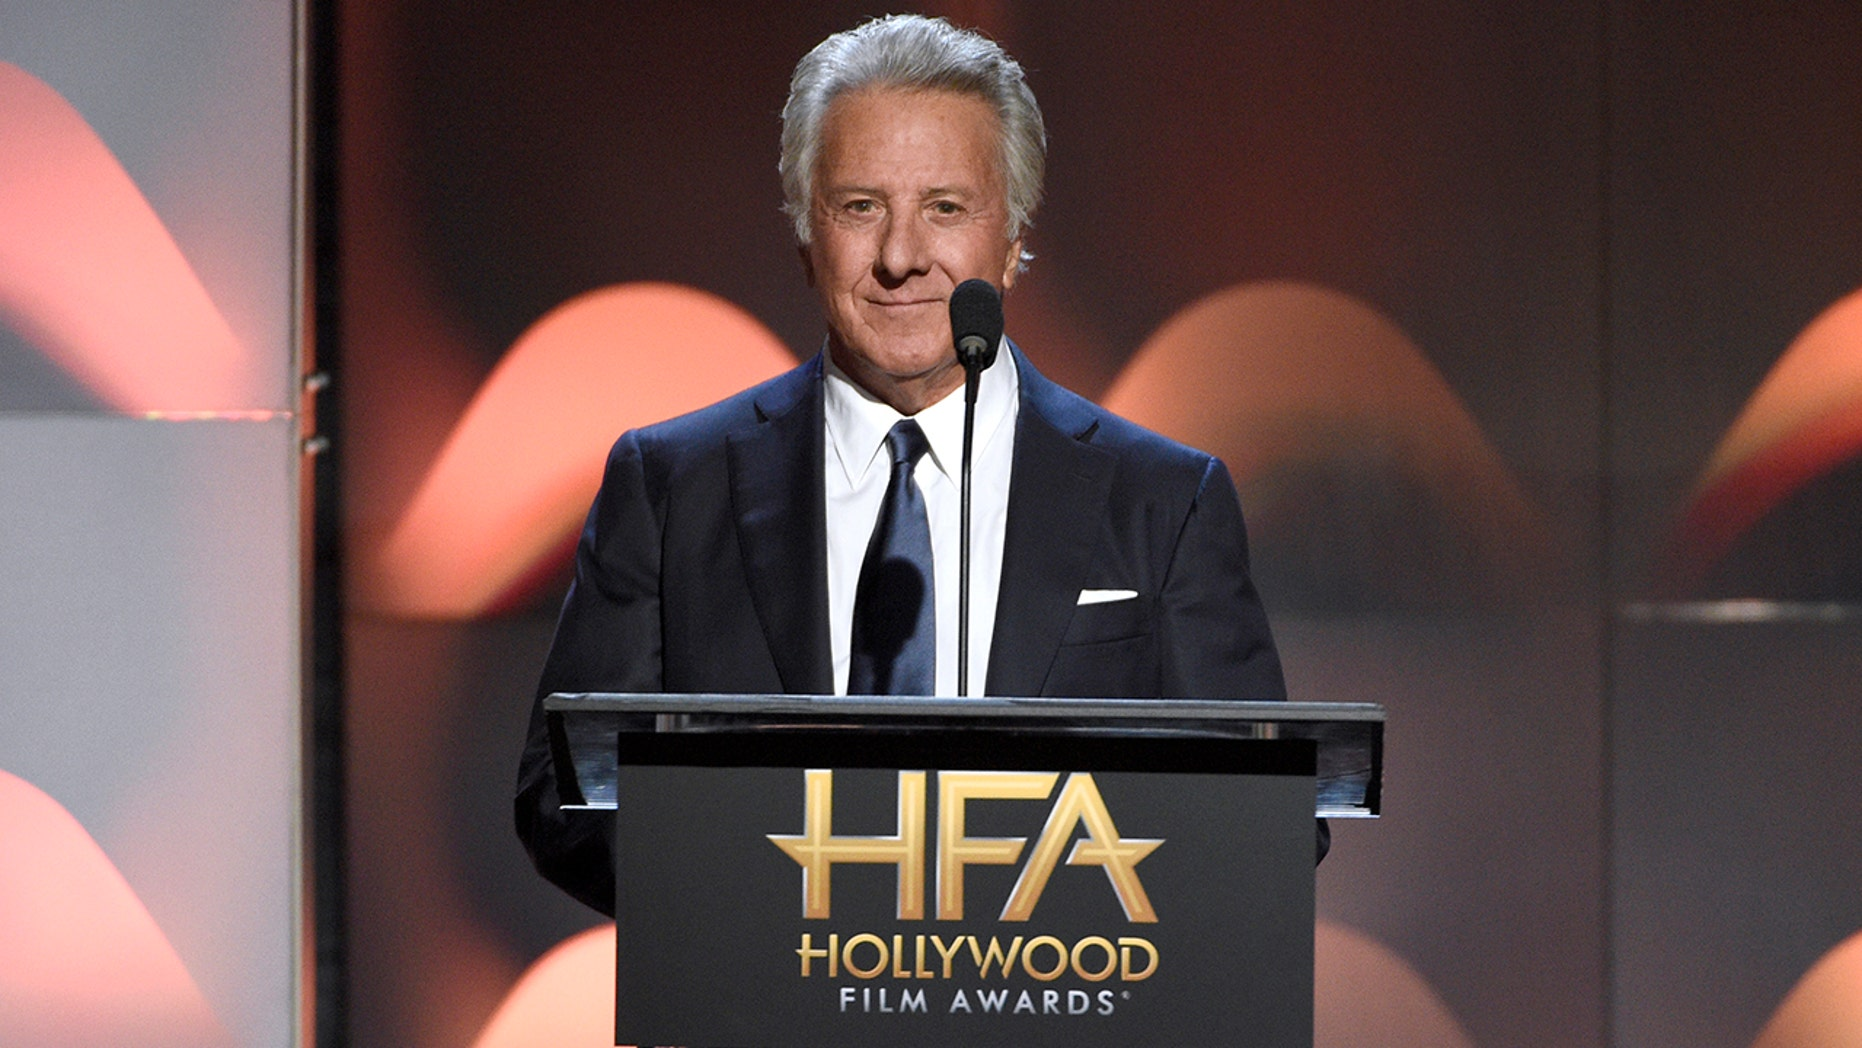 Dustin Hoffman presents the Hollywood comedy award at the Hollywood Film Awards at the Beverly Hilton hotel on Sunday, Nov. 5, 2017, in Beverly Hills, Calif. (Photo by Chris Pizzello/Invision/AP)